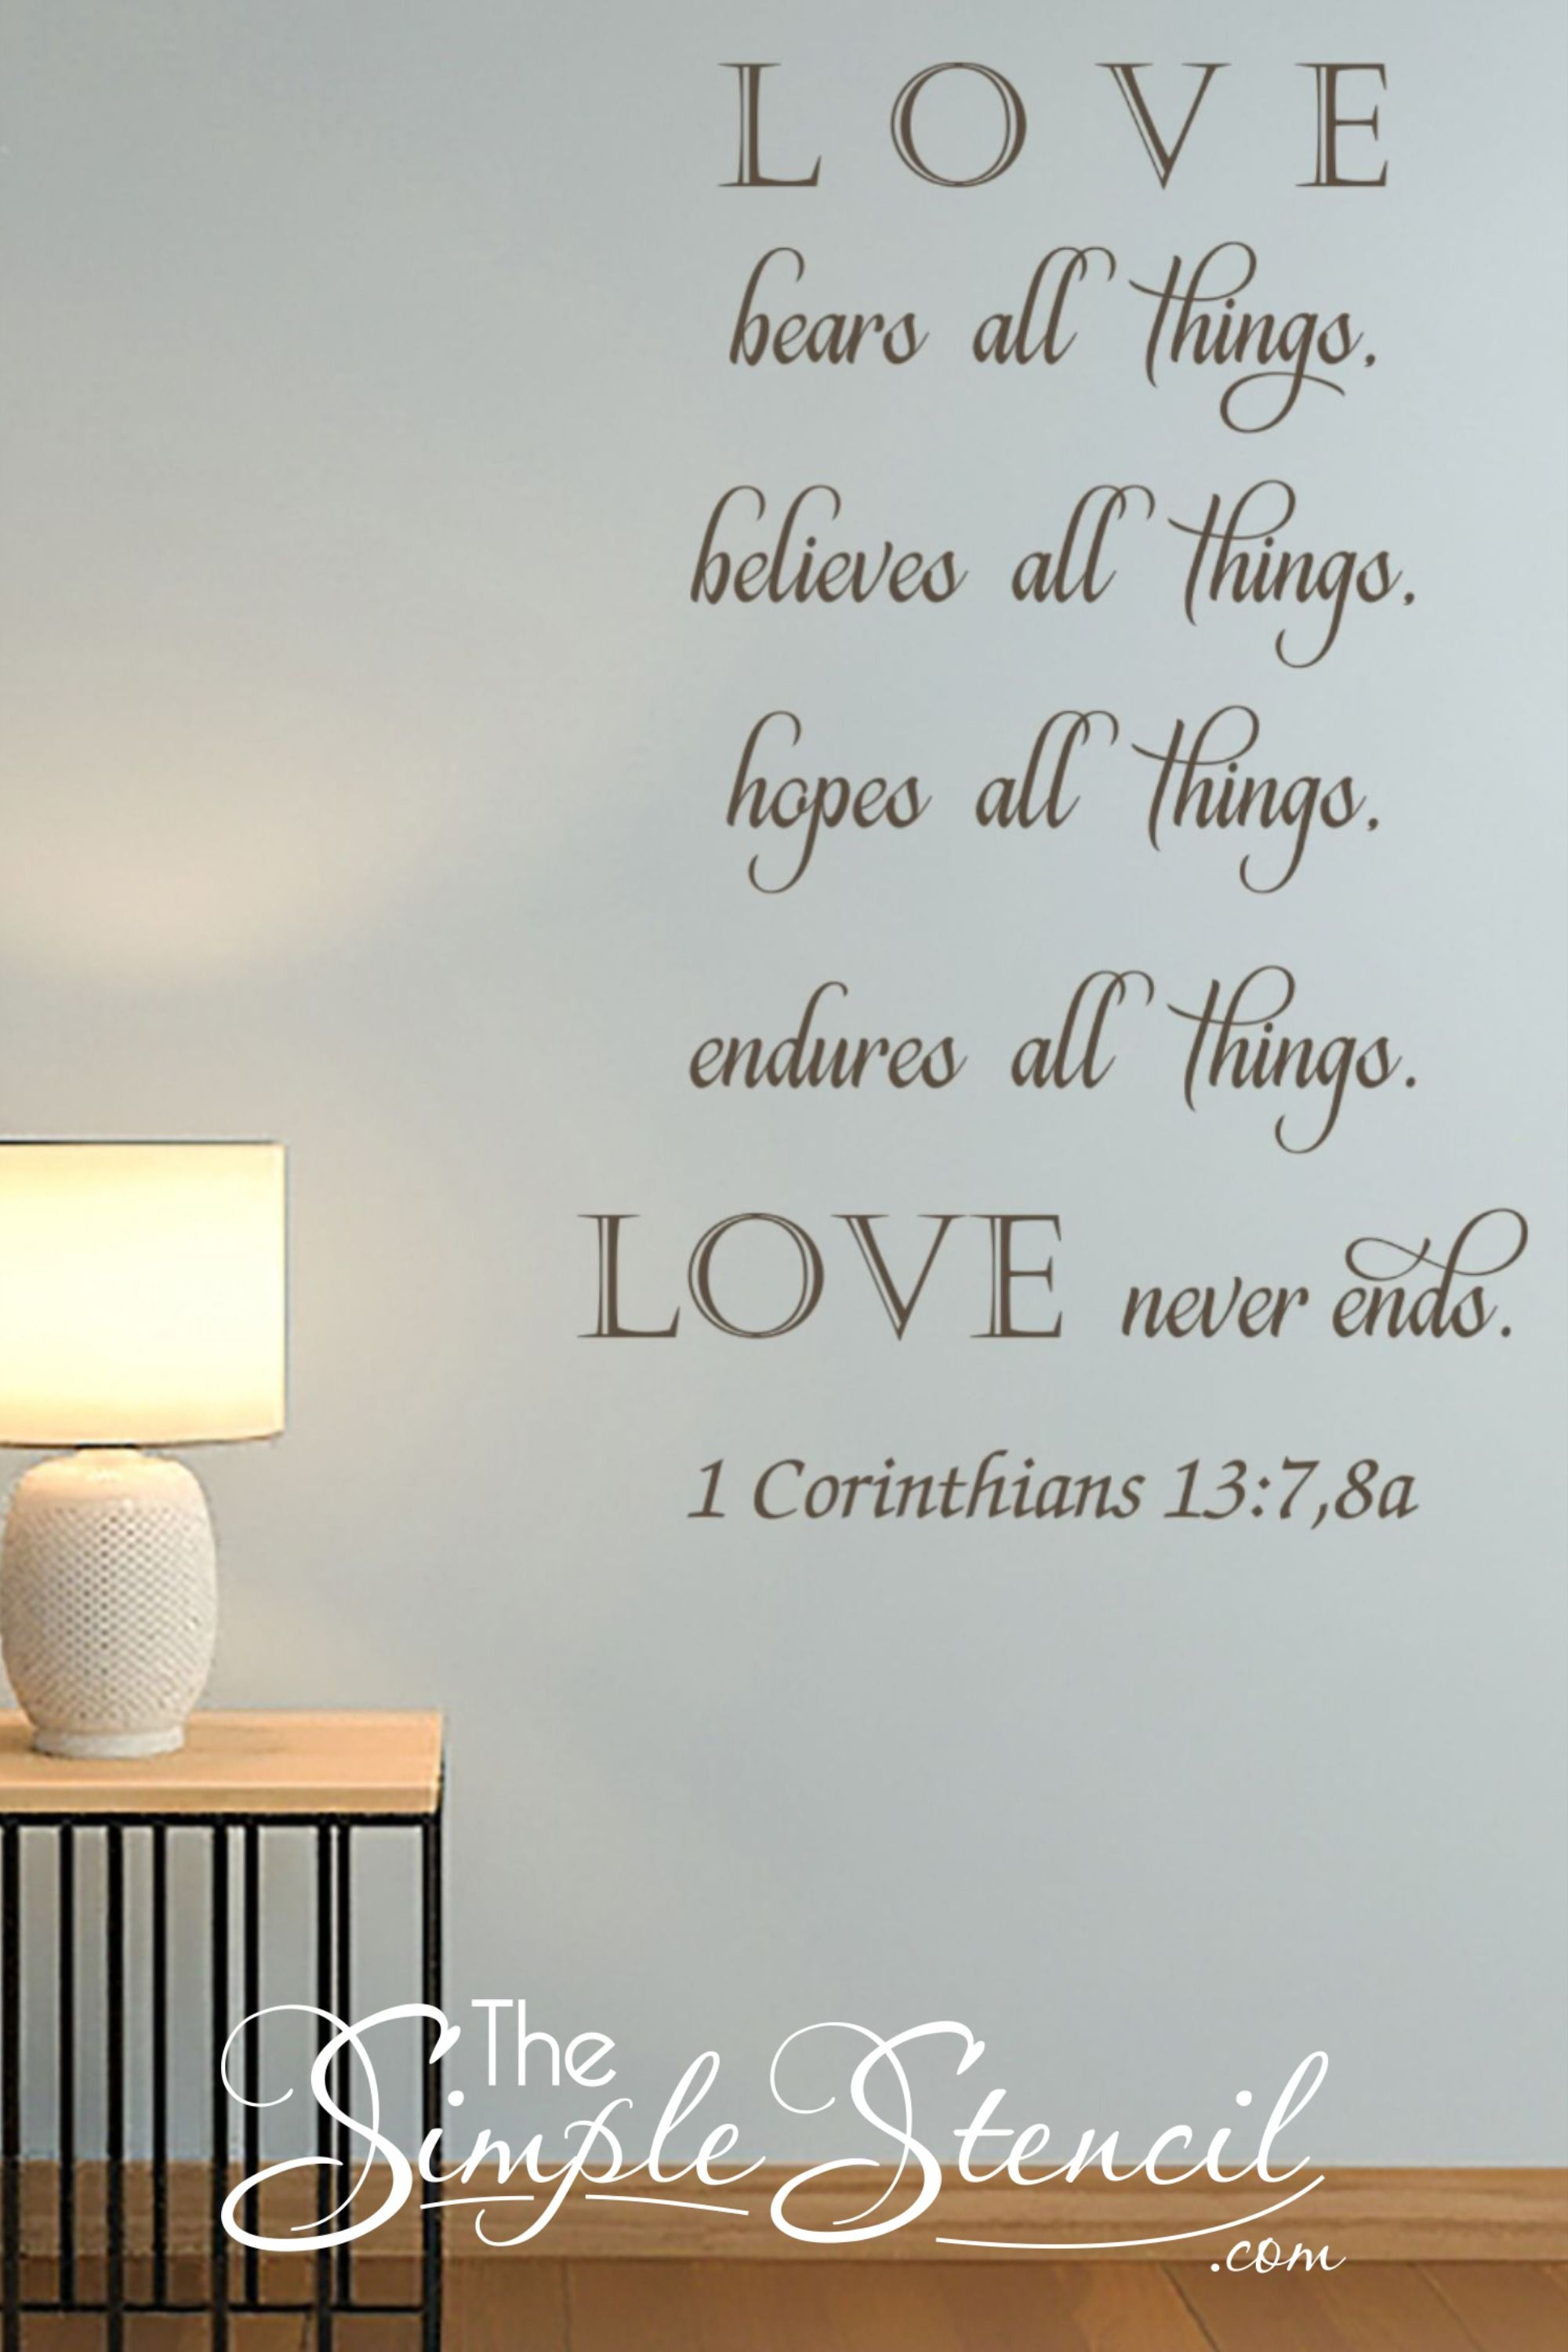 Id005 Car Decal Loads of Easter Joy To Every Girl /& Boy Easter Quote Wall Decal Vinyl Decal